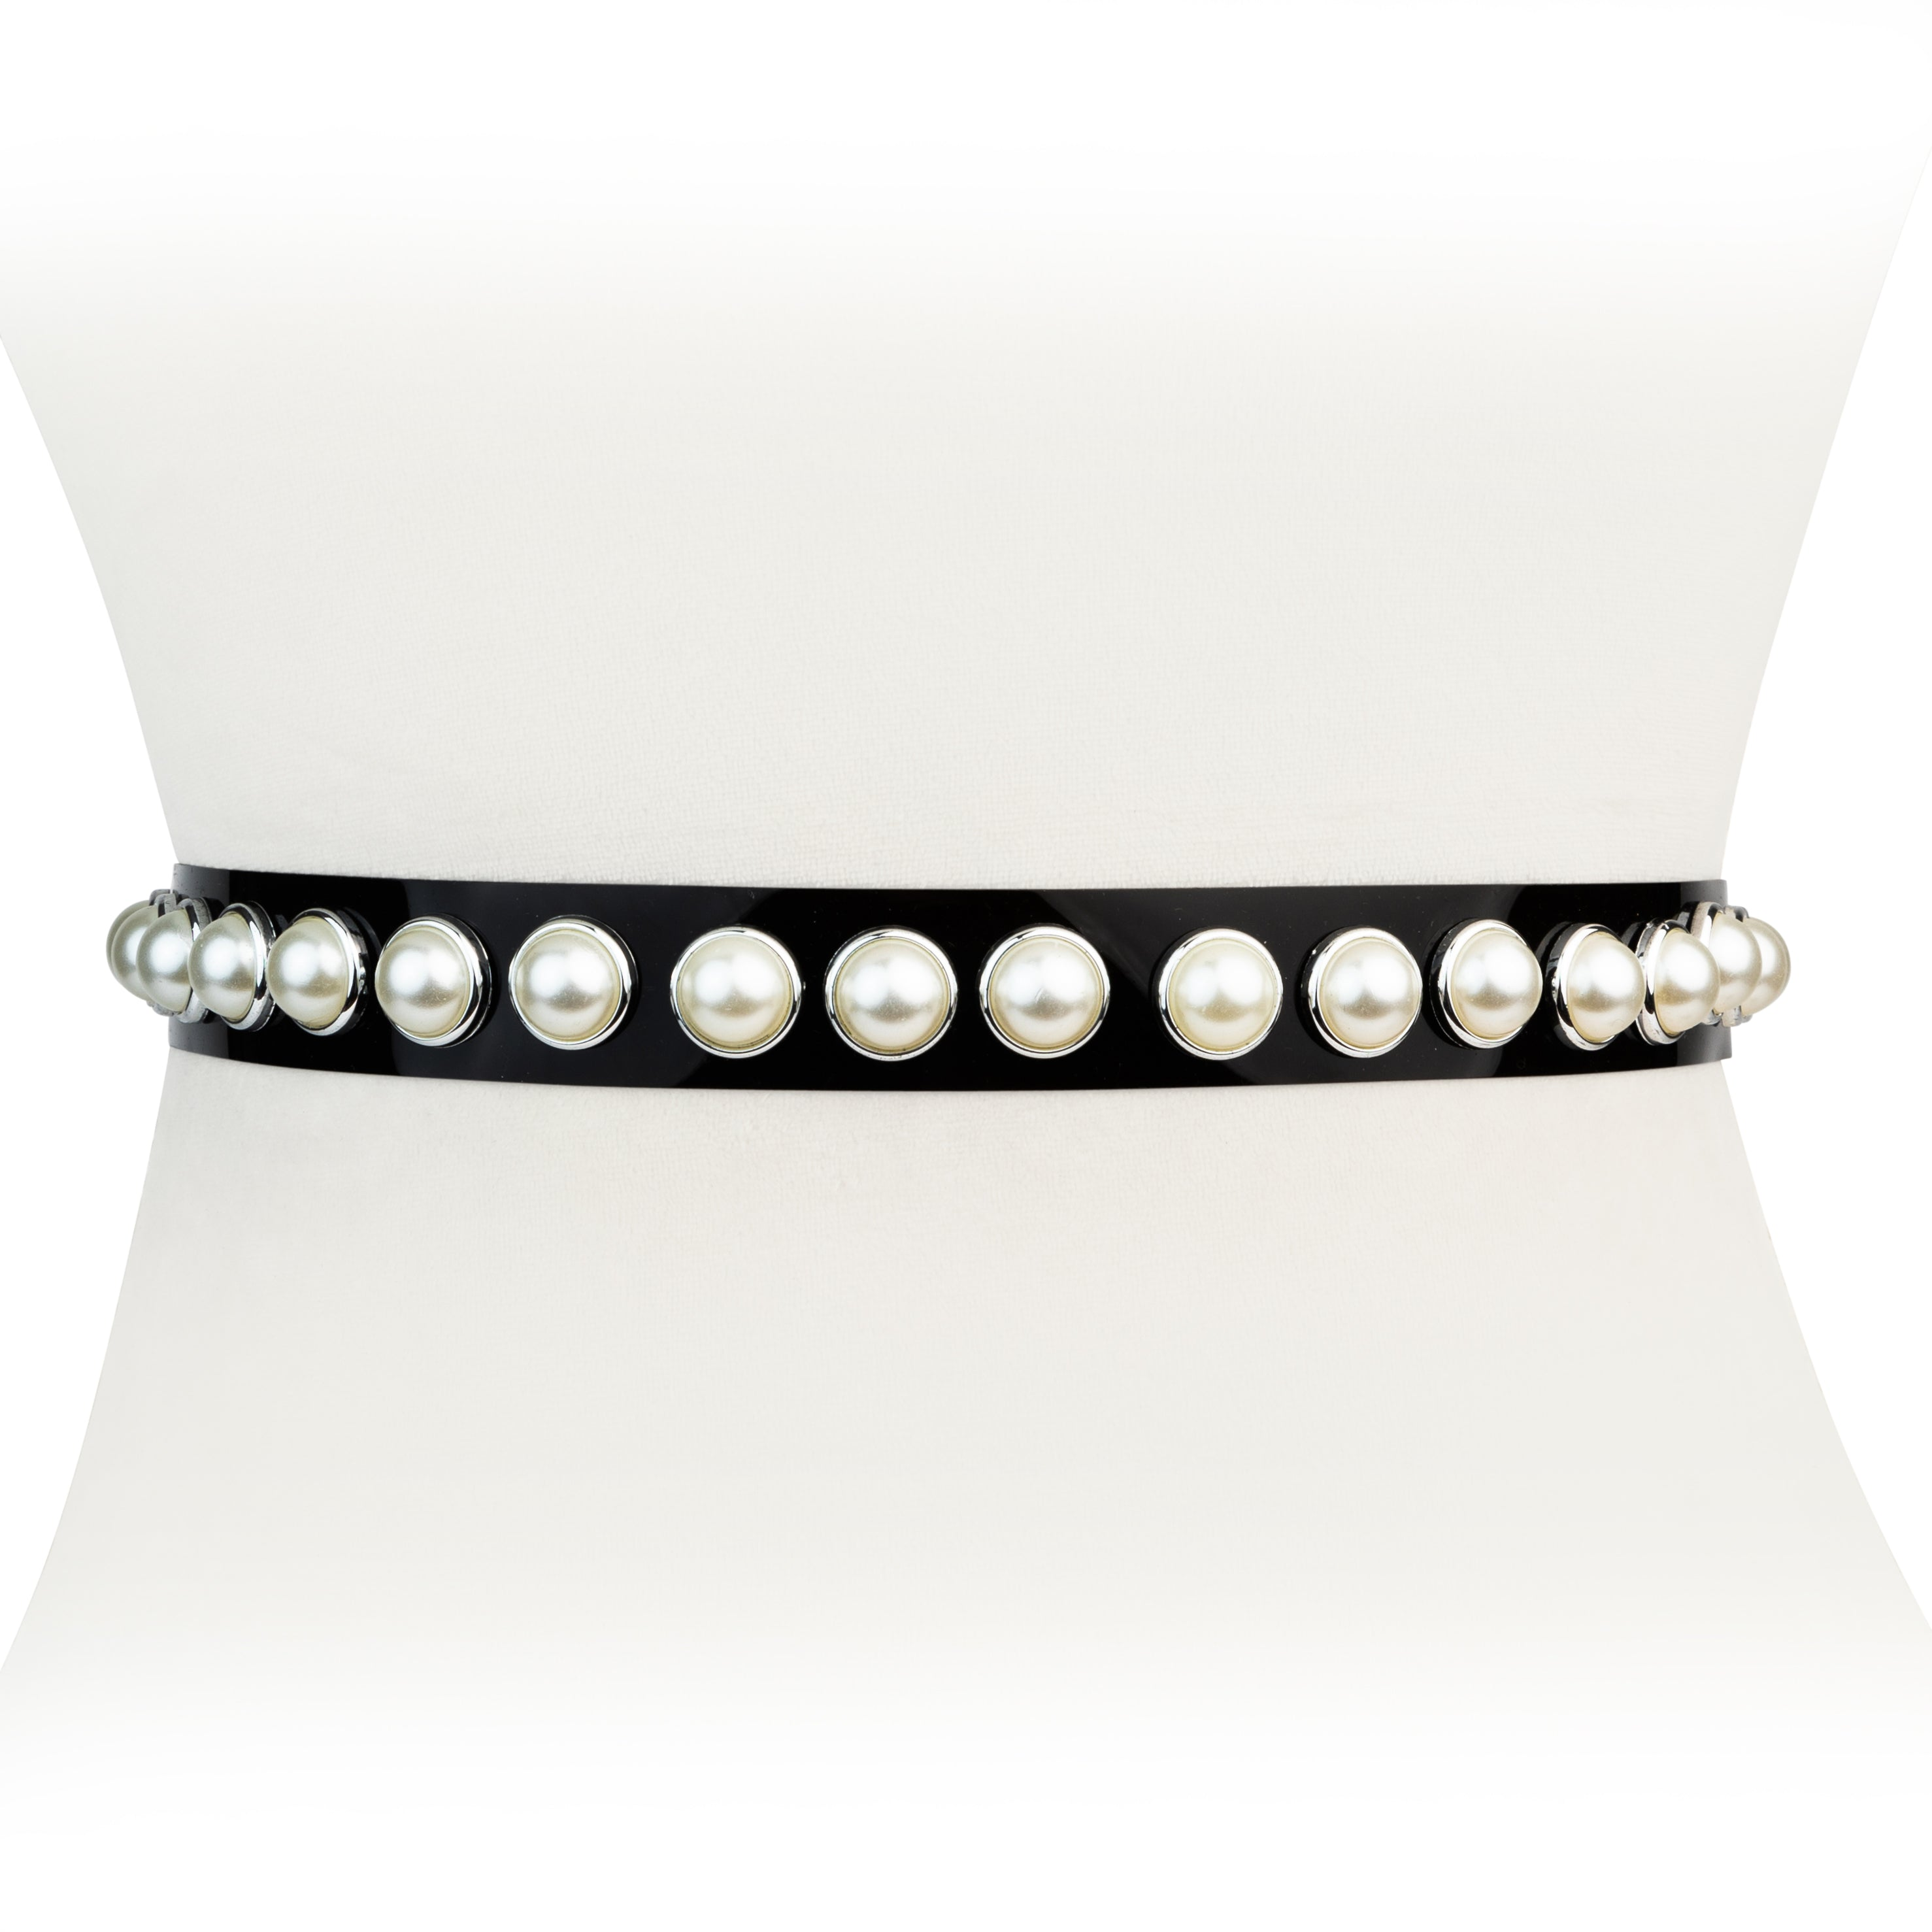 Transparent Pearl Waist Belt For Women - Two 12 Fashion